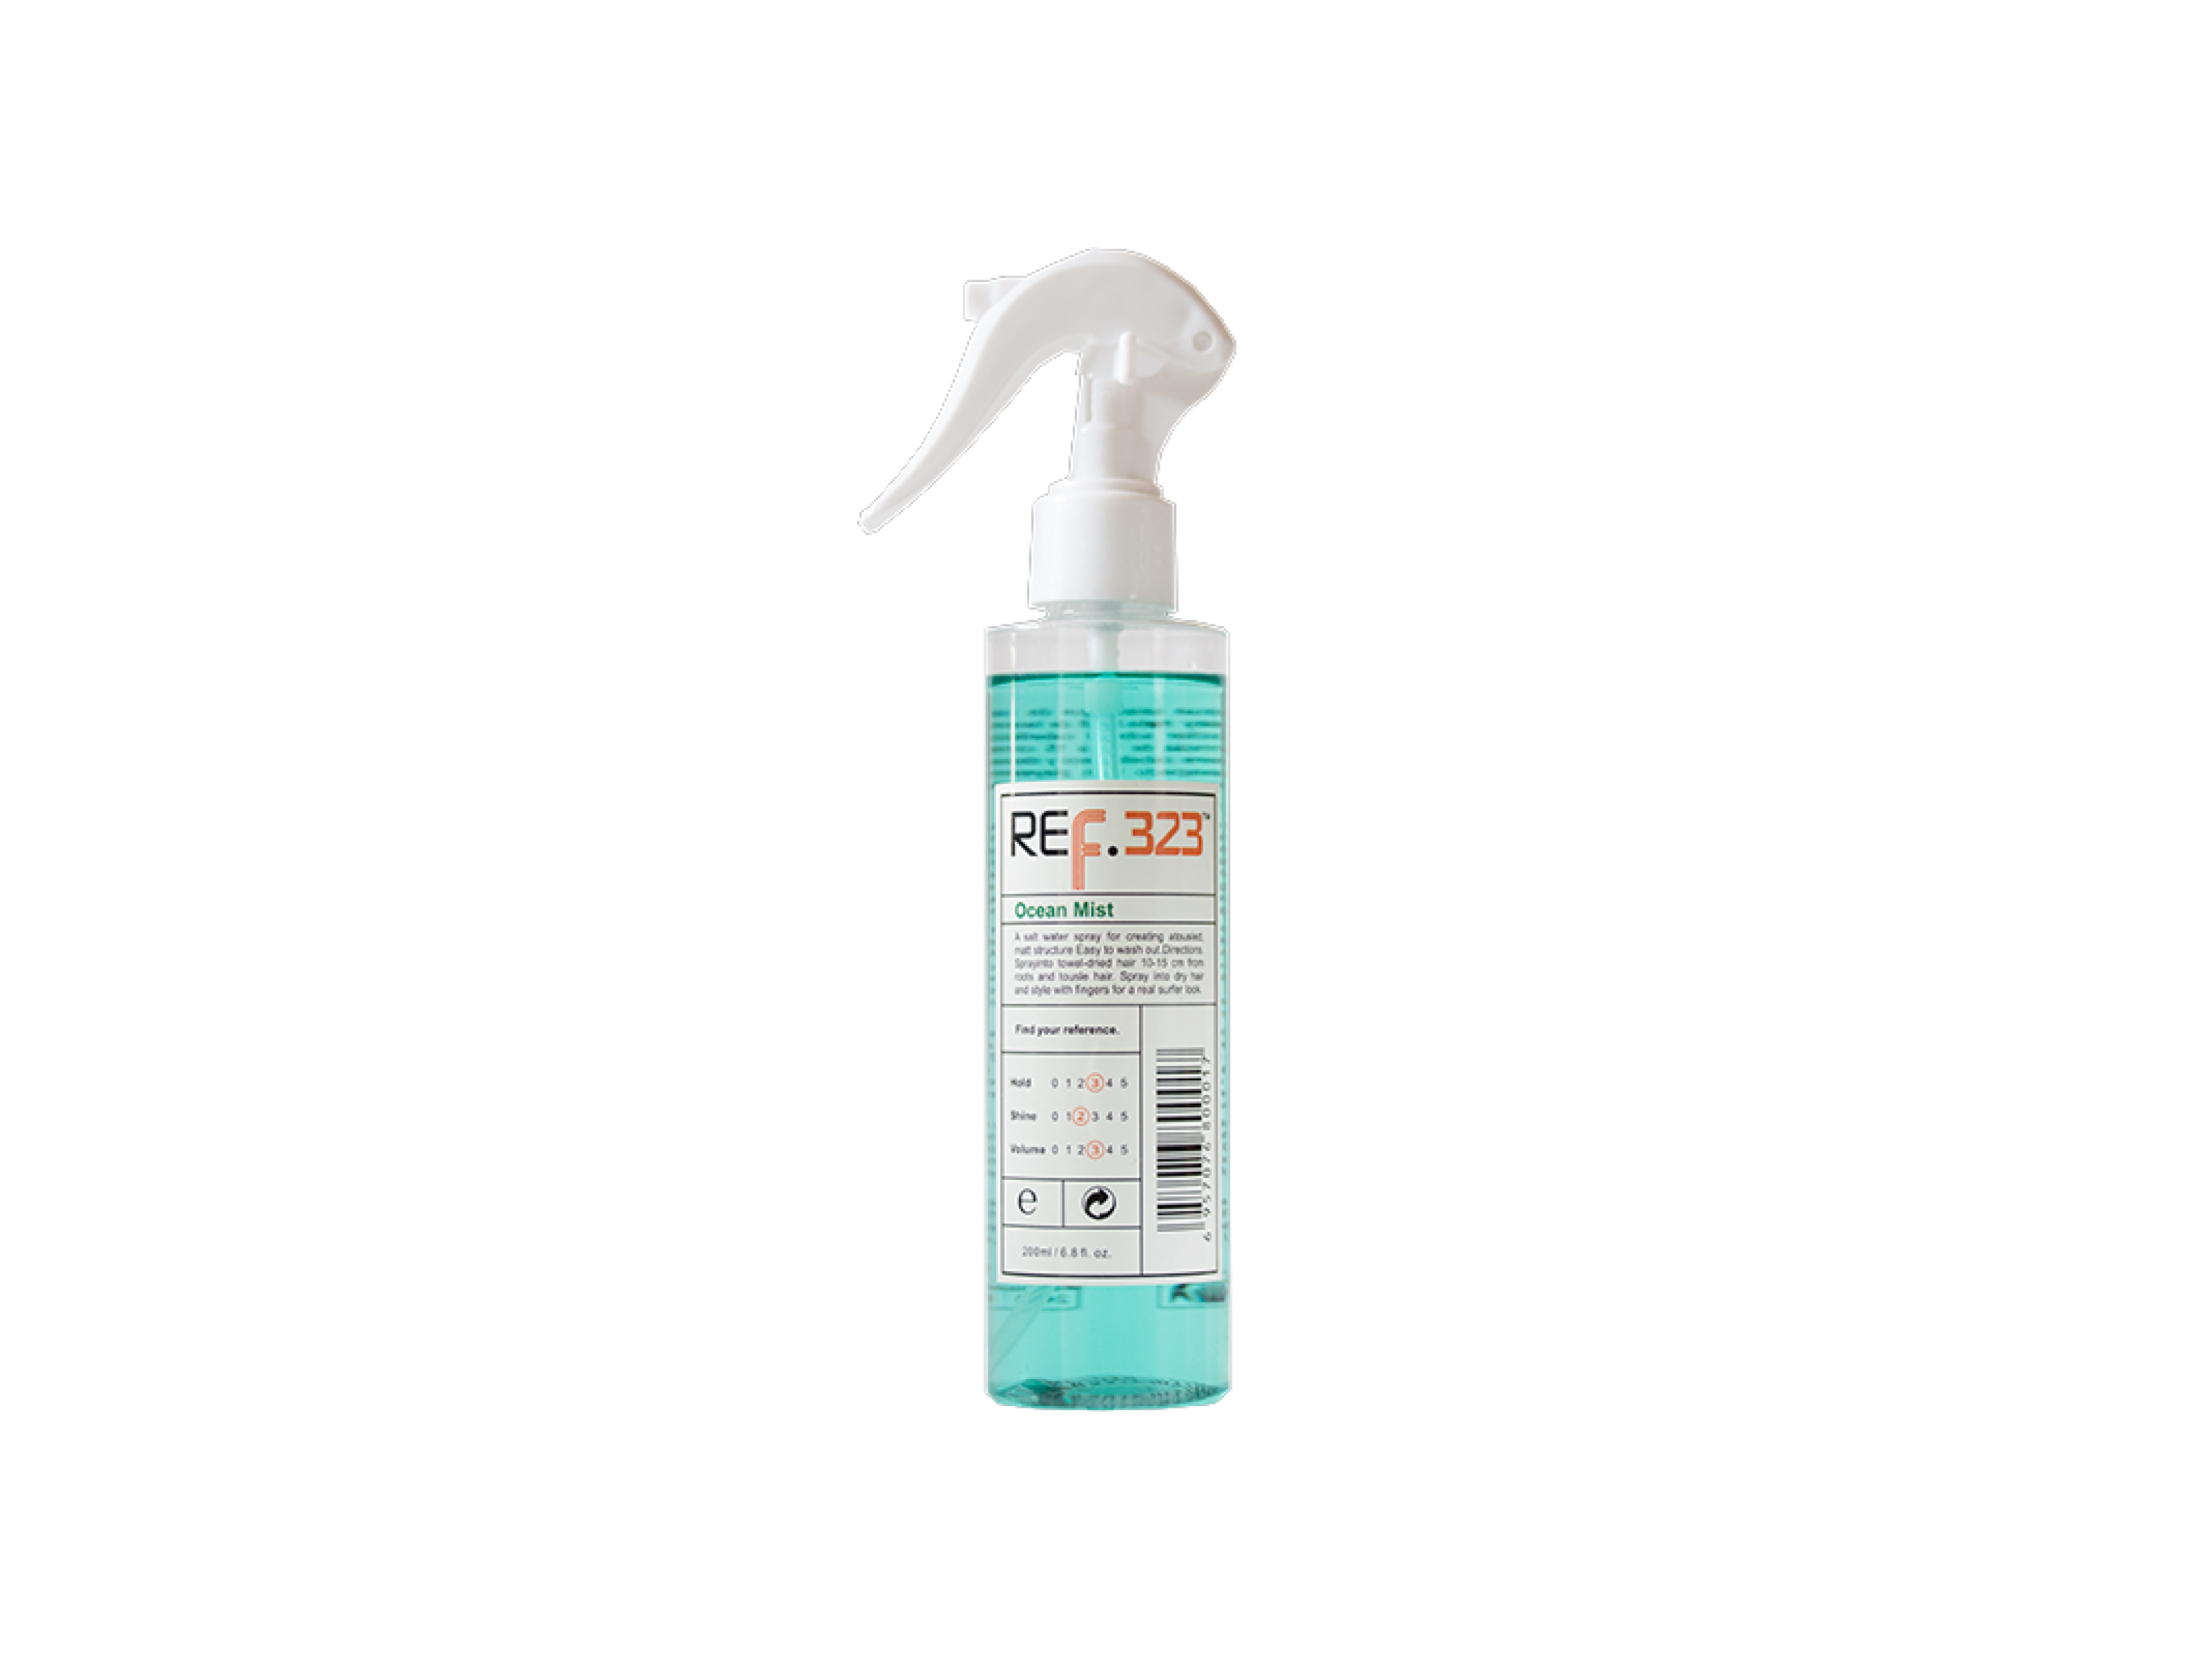 REF 323 OCEAN MIST SEA SPRAY 200ML